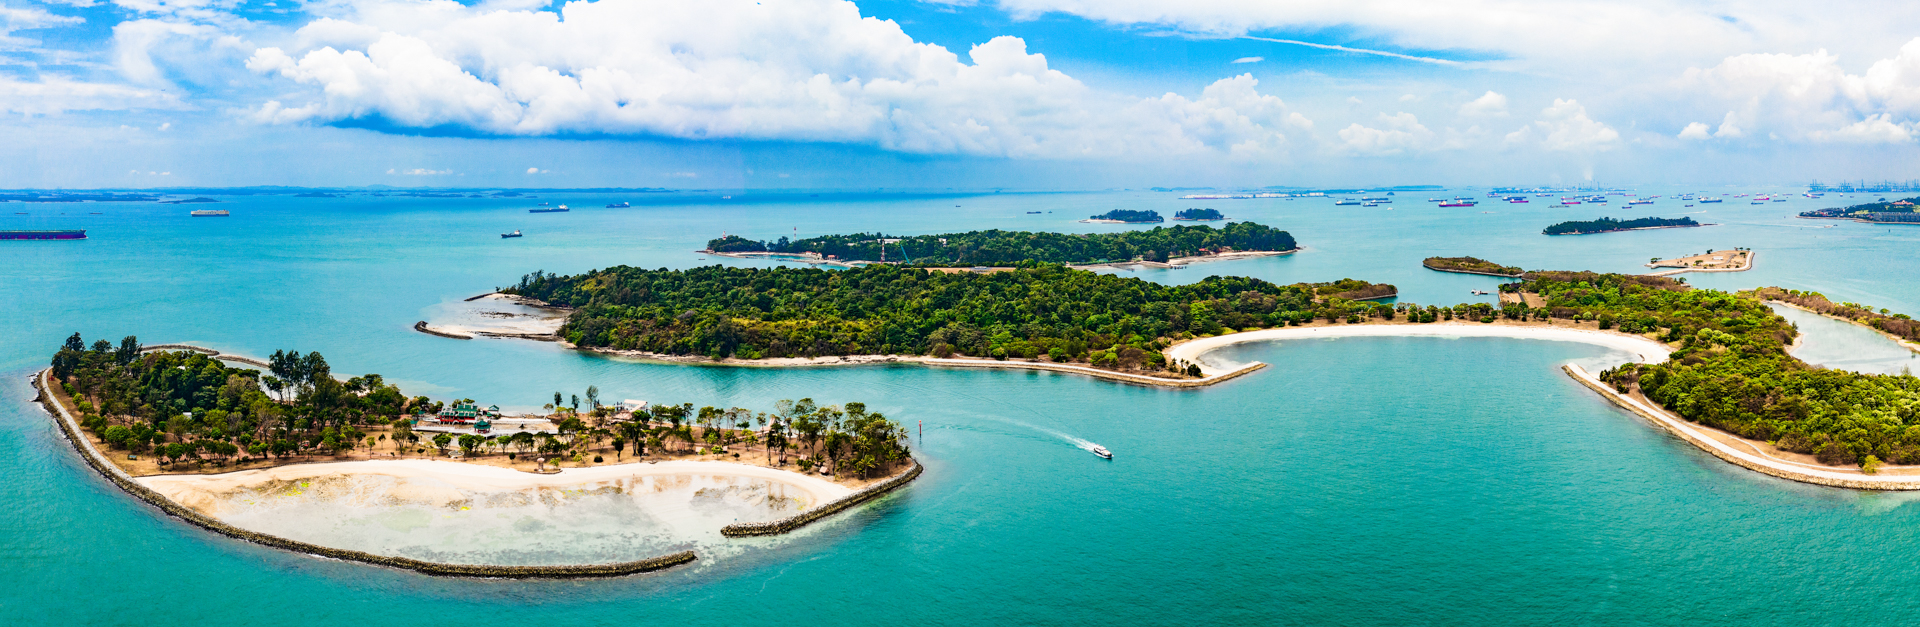 St John Island – A Tropical Island in Singapore